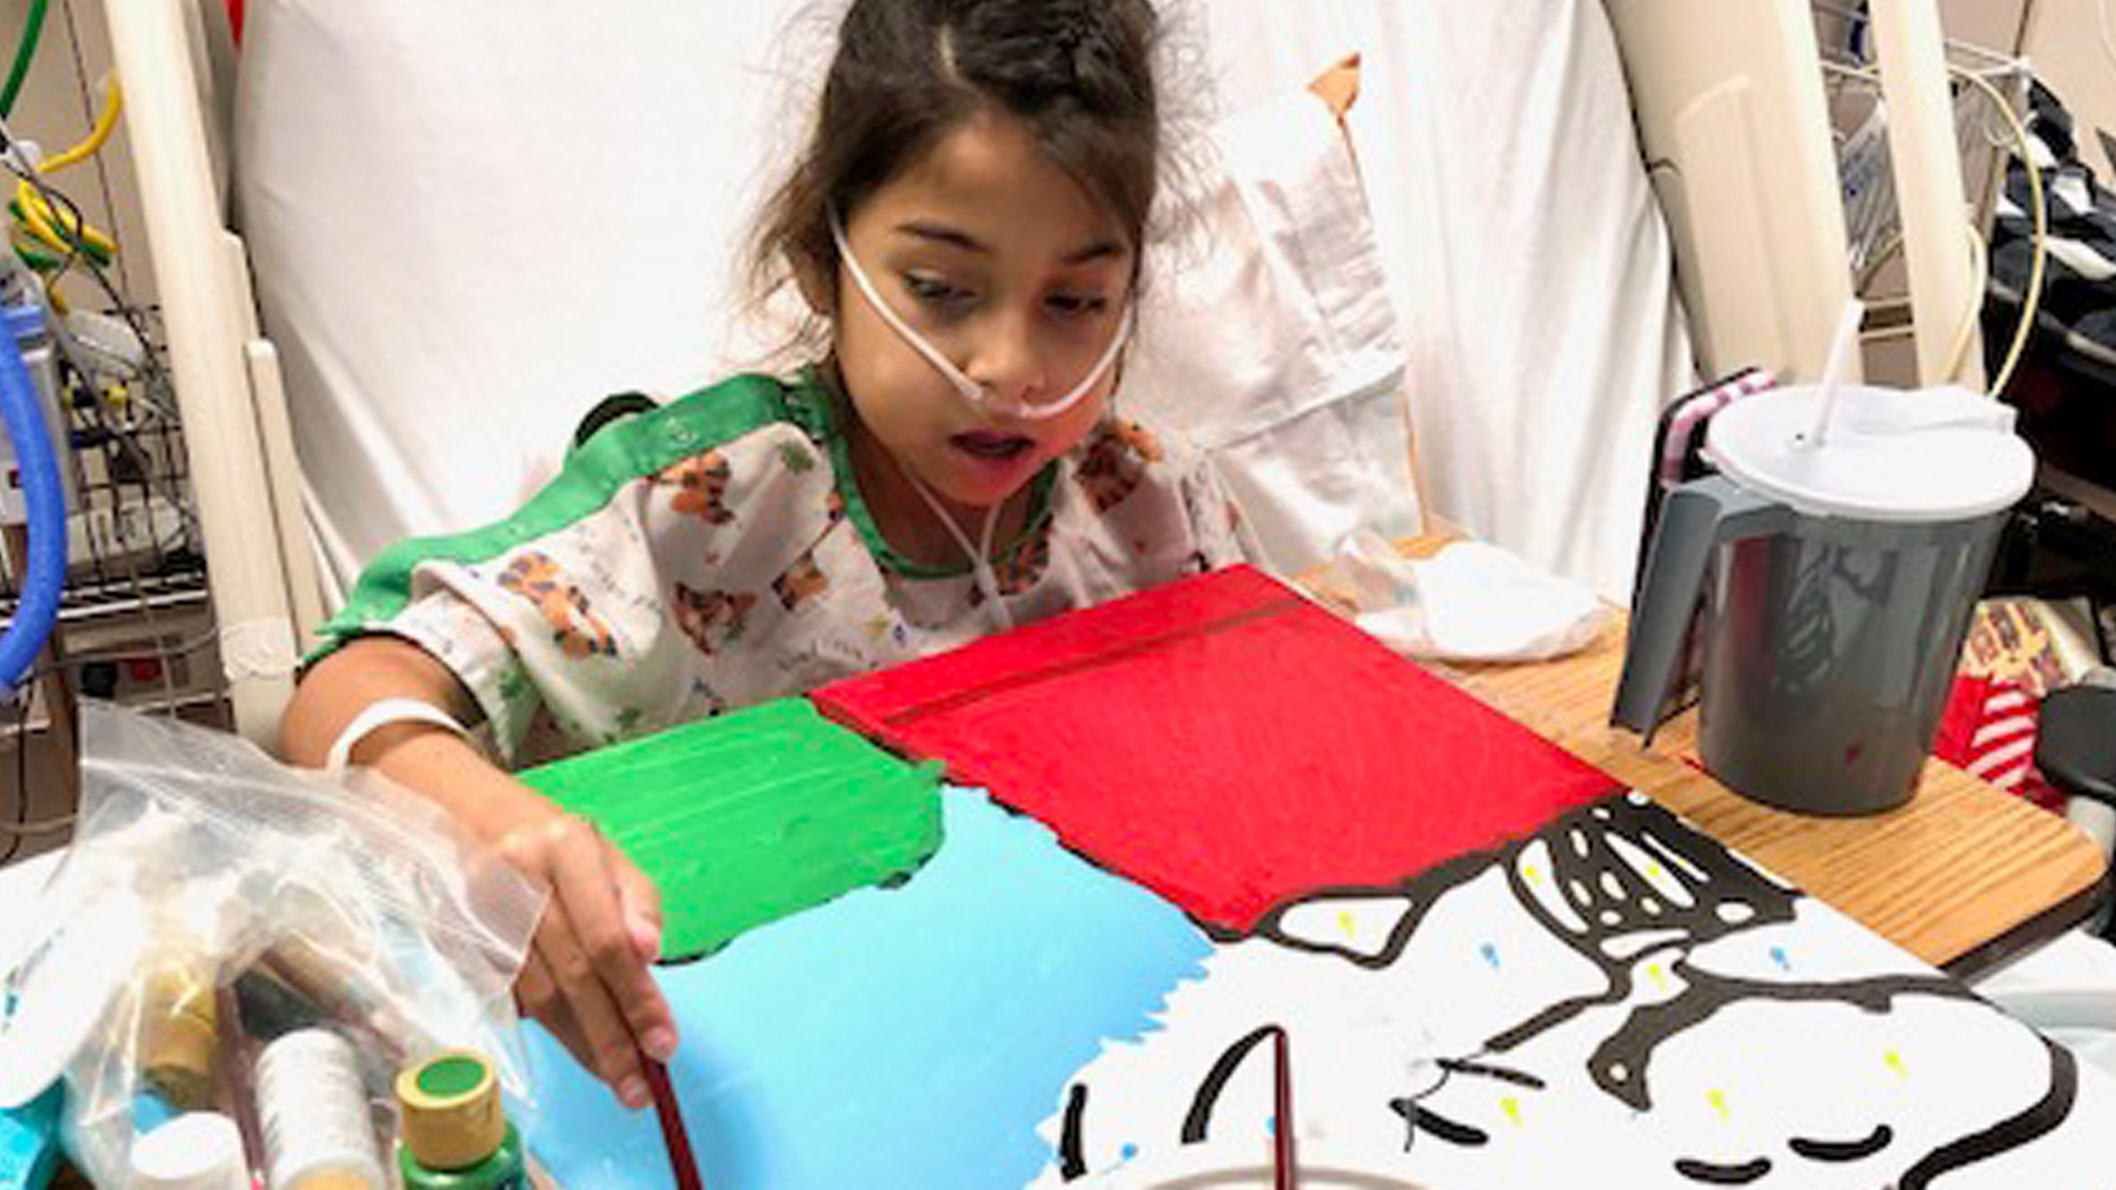 A little girl, in a hospital bed, paints part of a mural at a hospital.